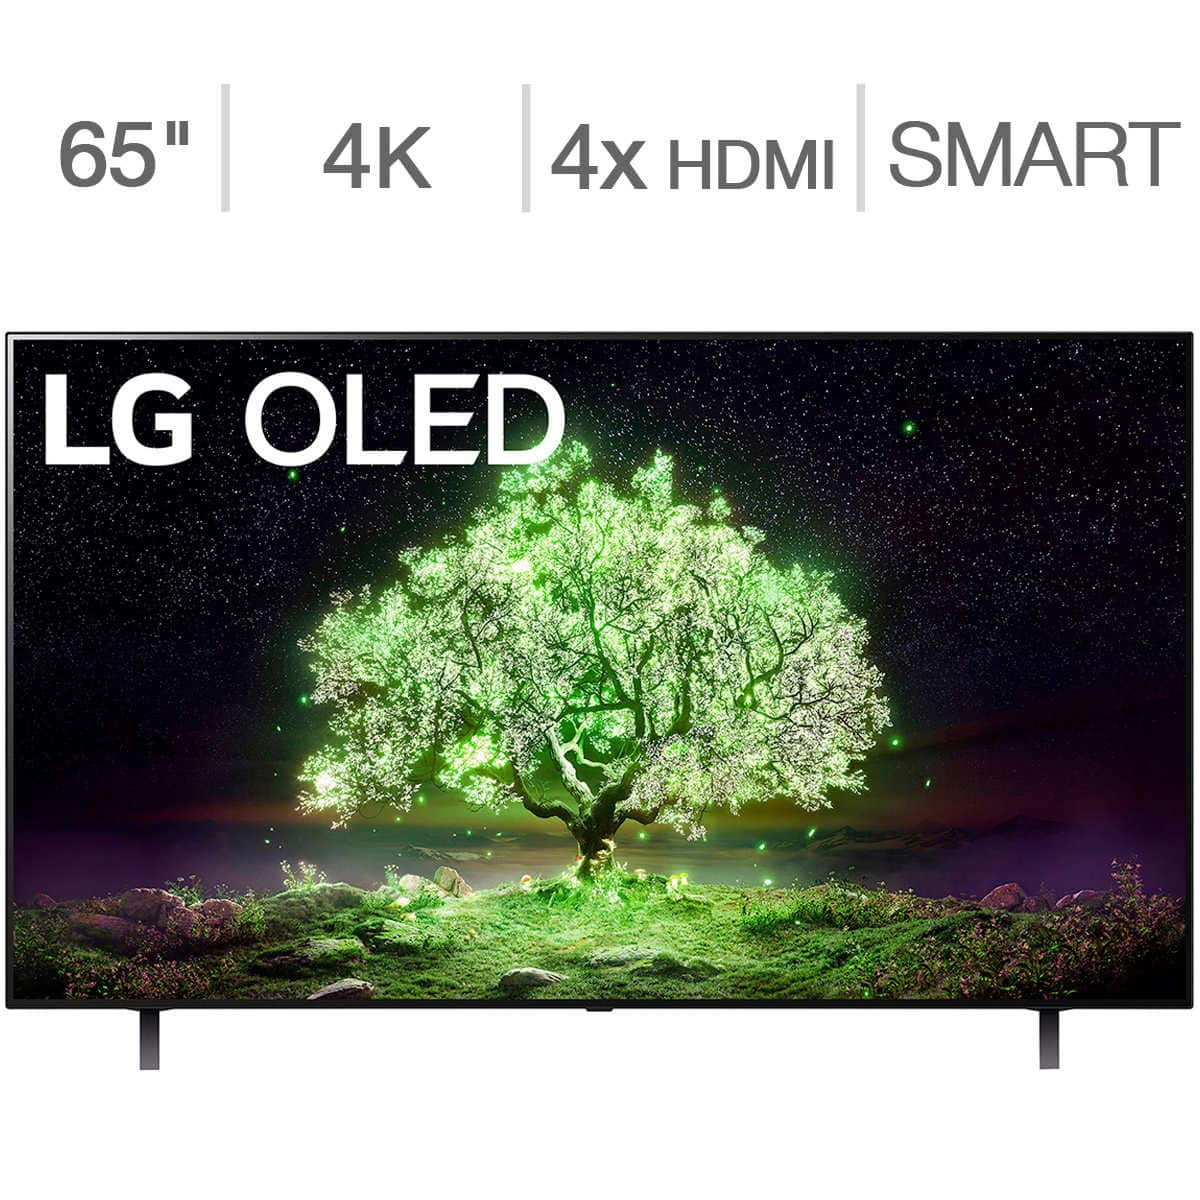 """LG 65"""" Class A1 Series OLED TV - Allstate Protection Plan Bundle Included $1599.99 at Costco"""